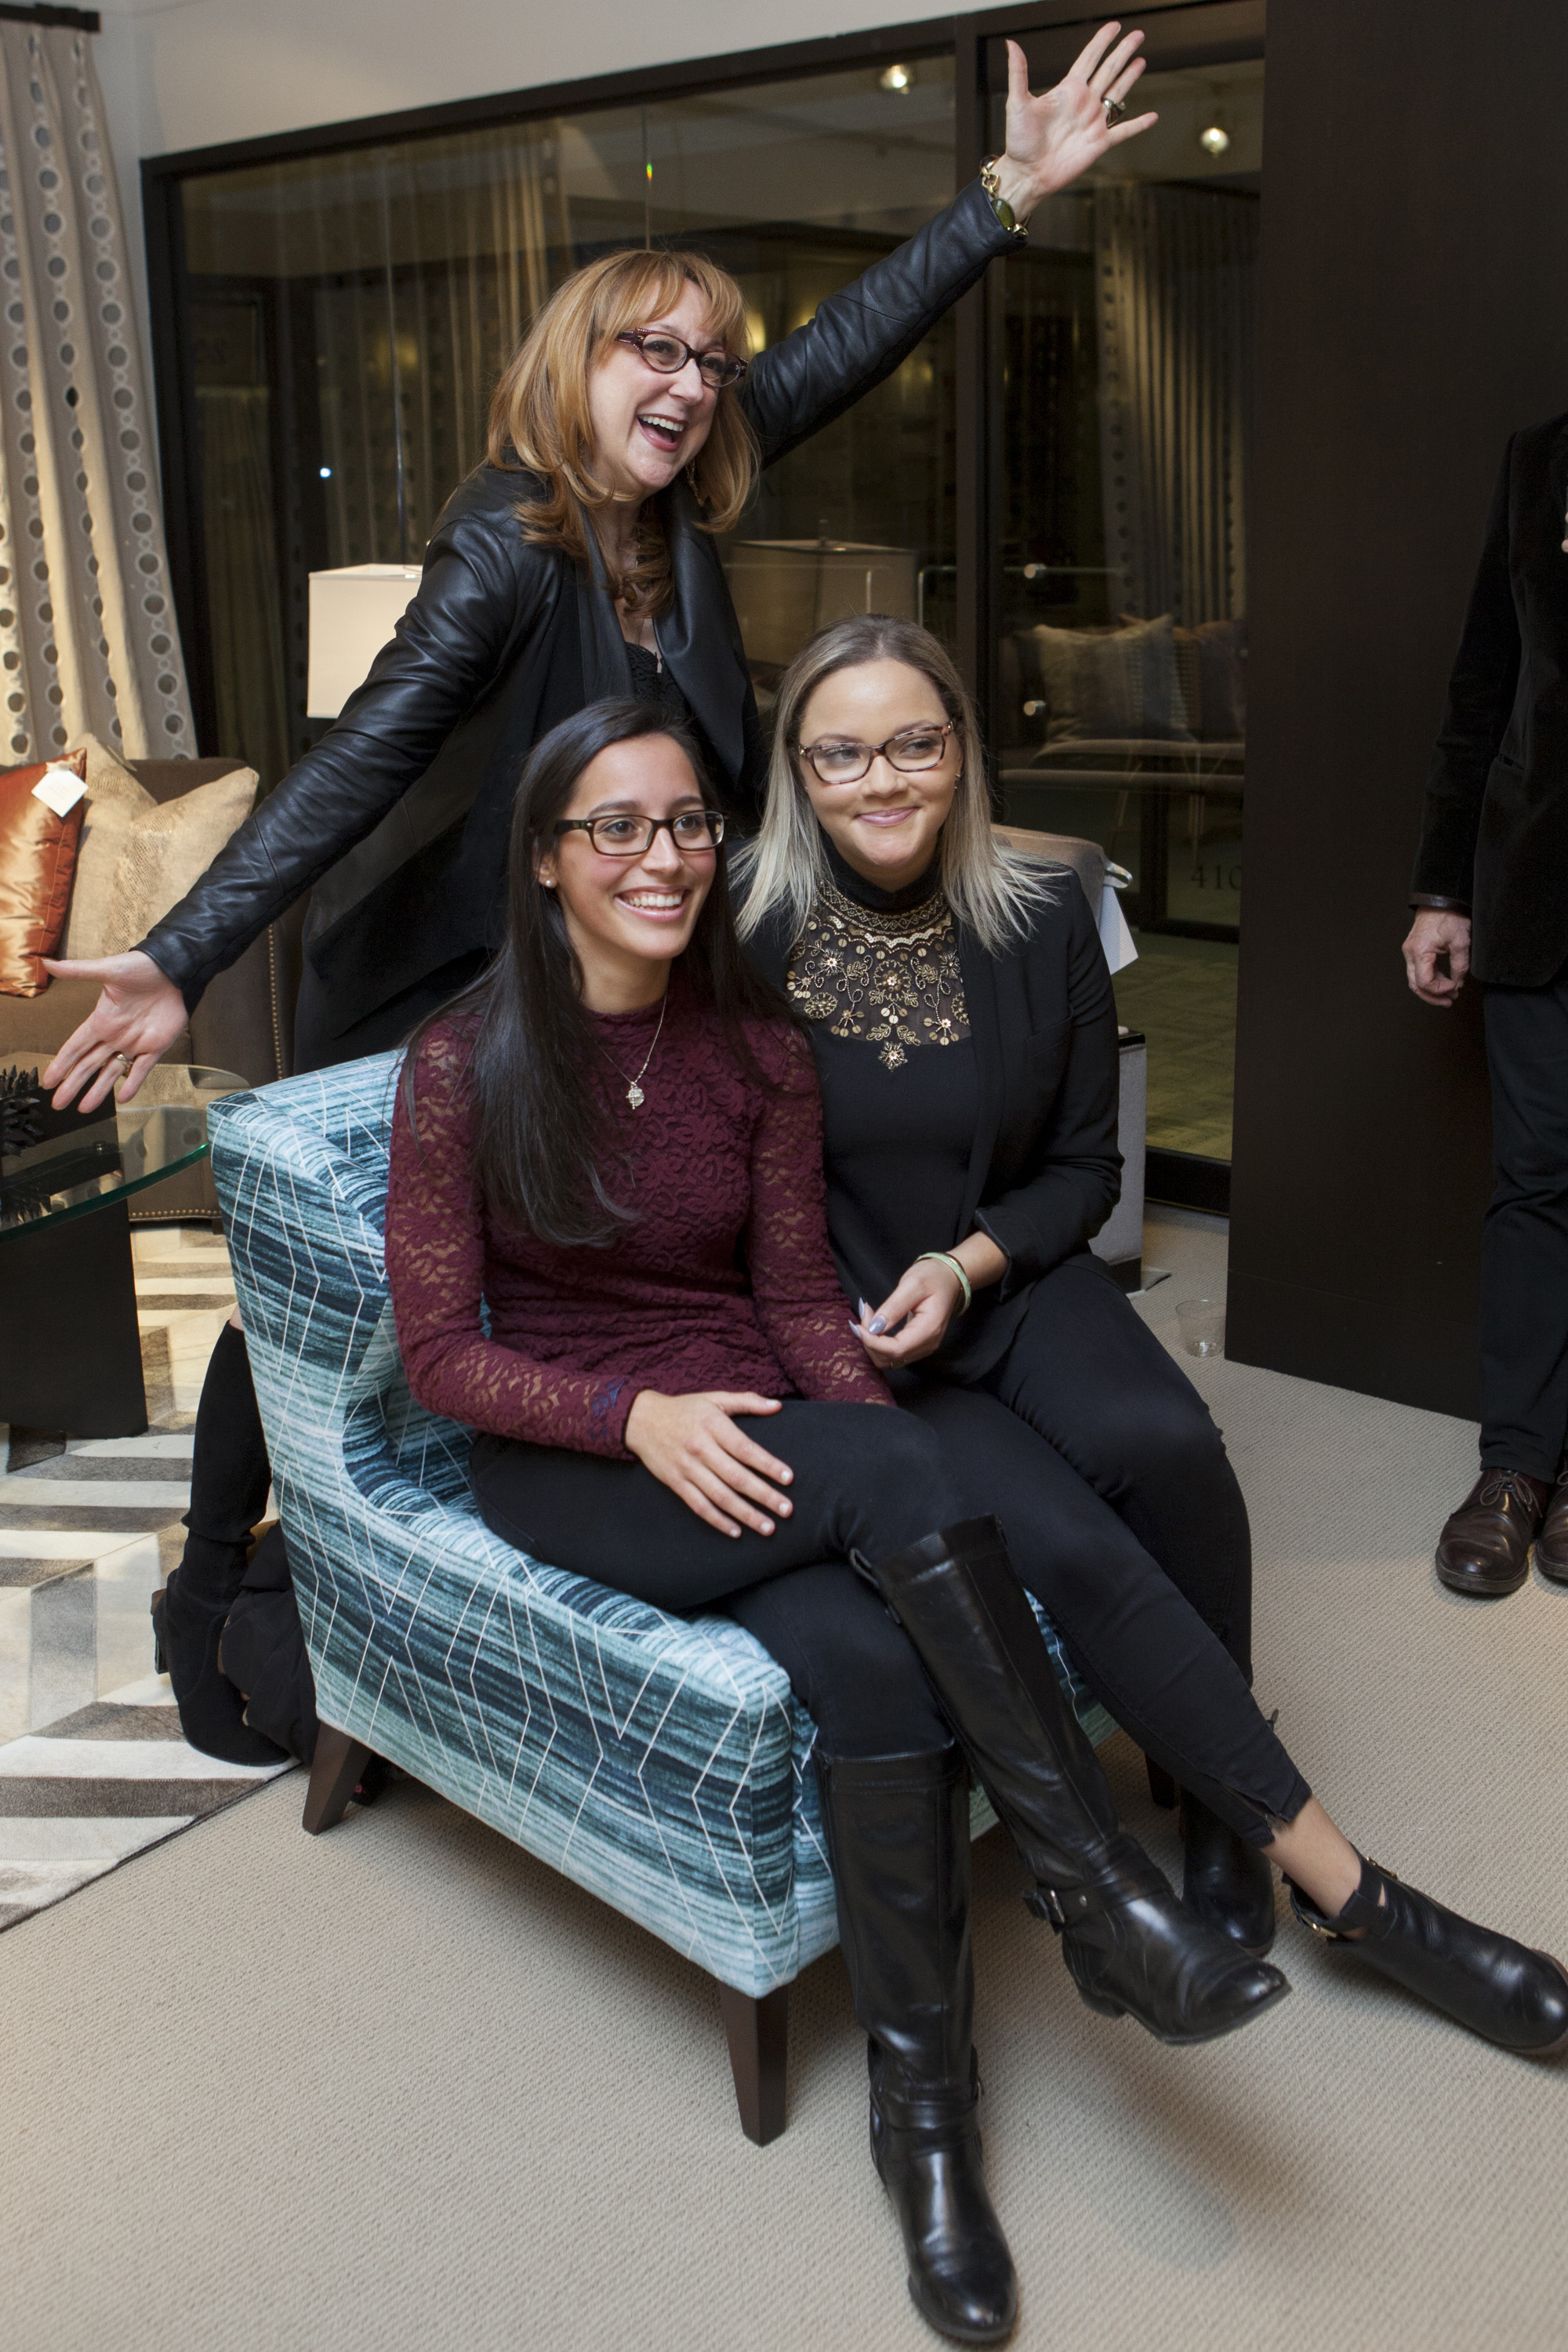 Two members of the winning team, NYIT students Victoria Rouse and Destiny Bates, pose with their mentor, Robin Baron, on the chair upholstered in the fabric they designed. (Not pictured: team member John Sanchez)